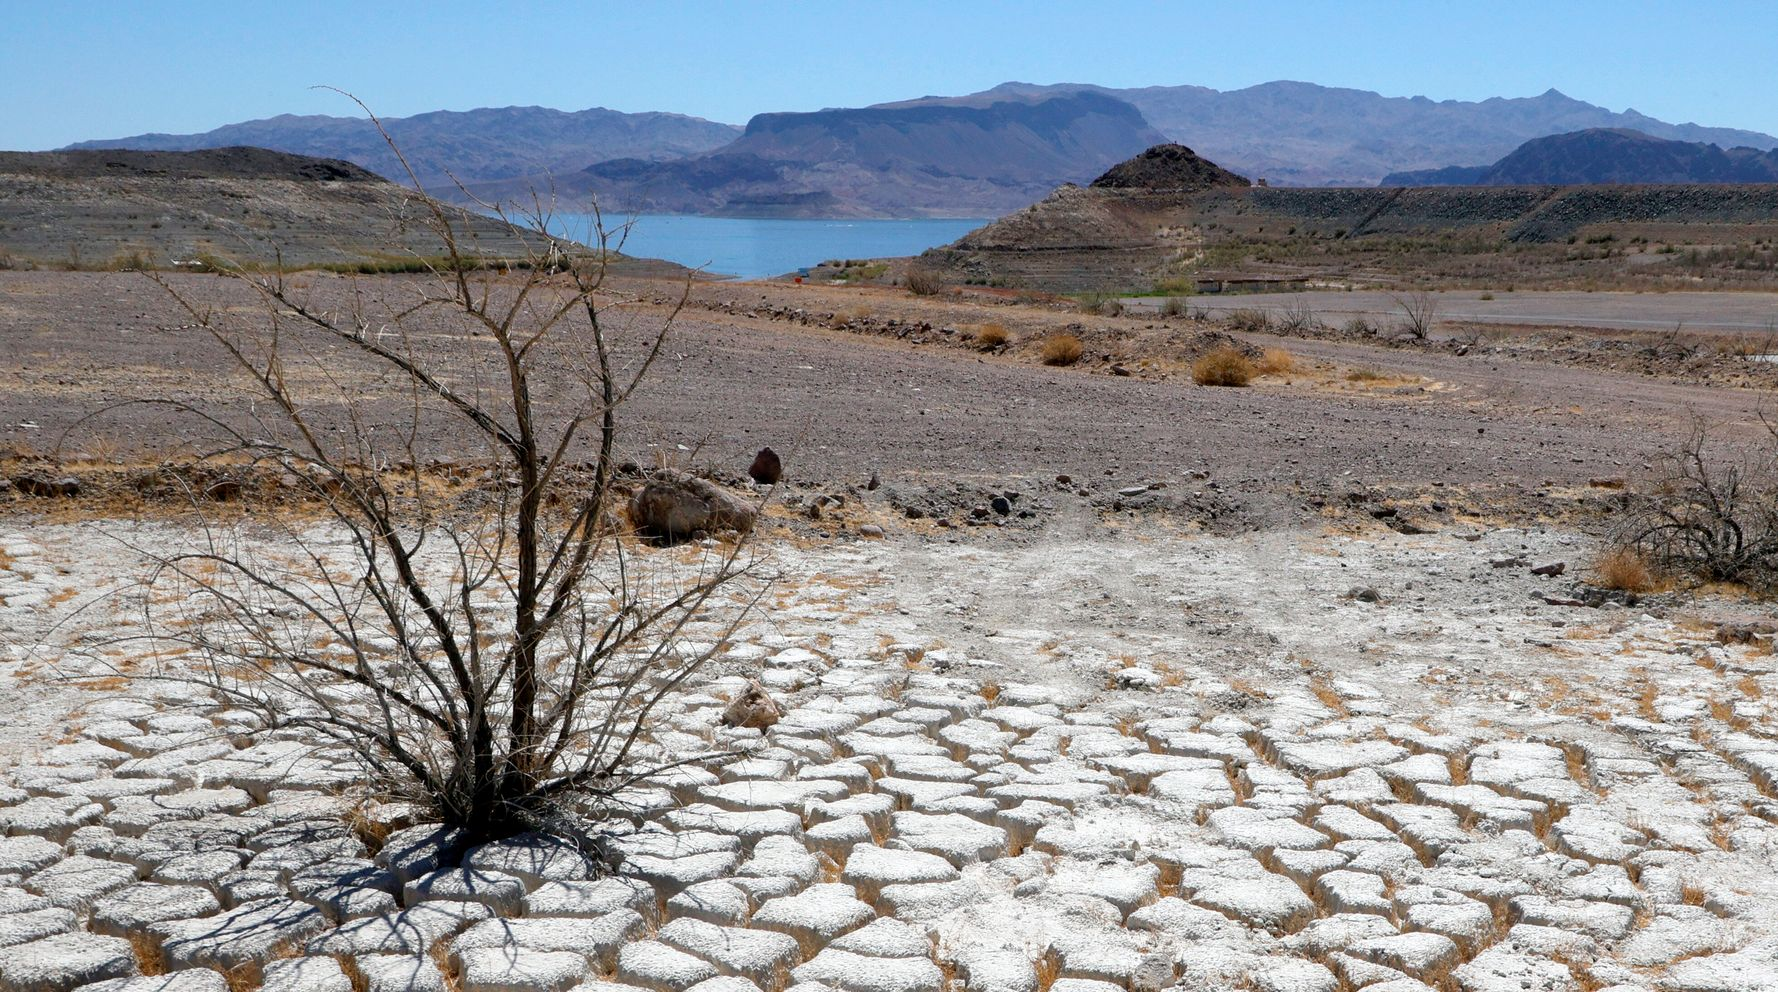 50 Million Under Heat Warning As Extreme Temps, Drought Envelop Western U.S.